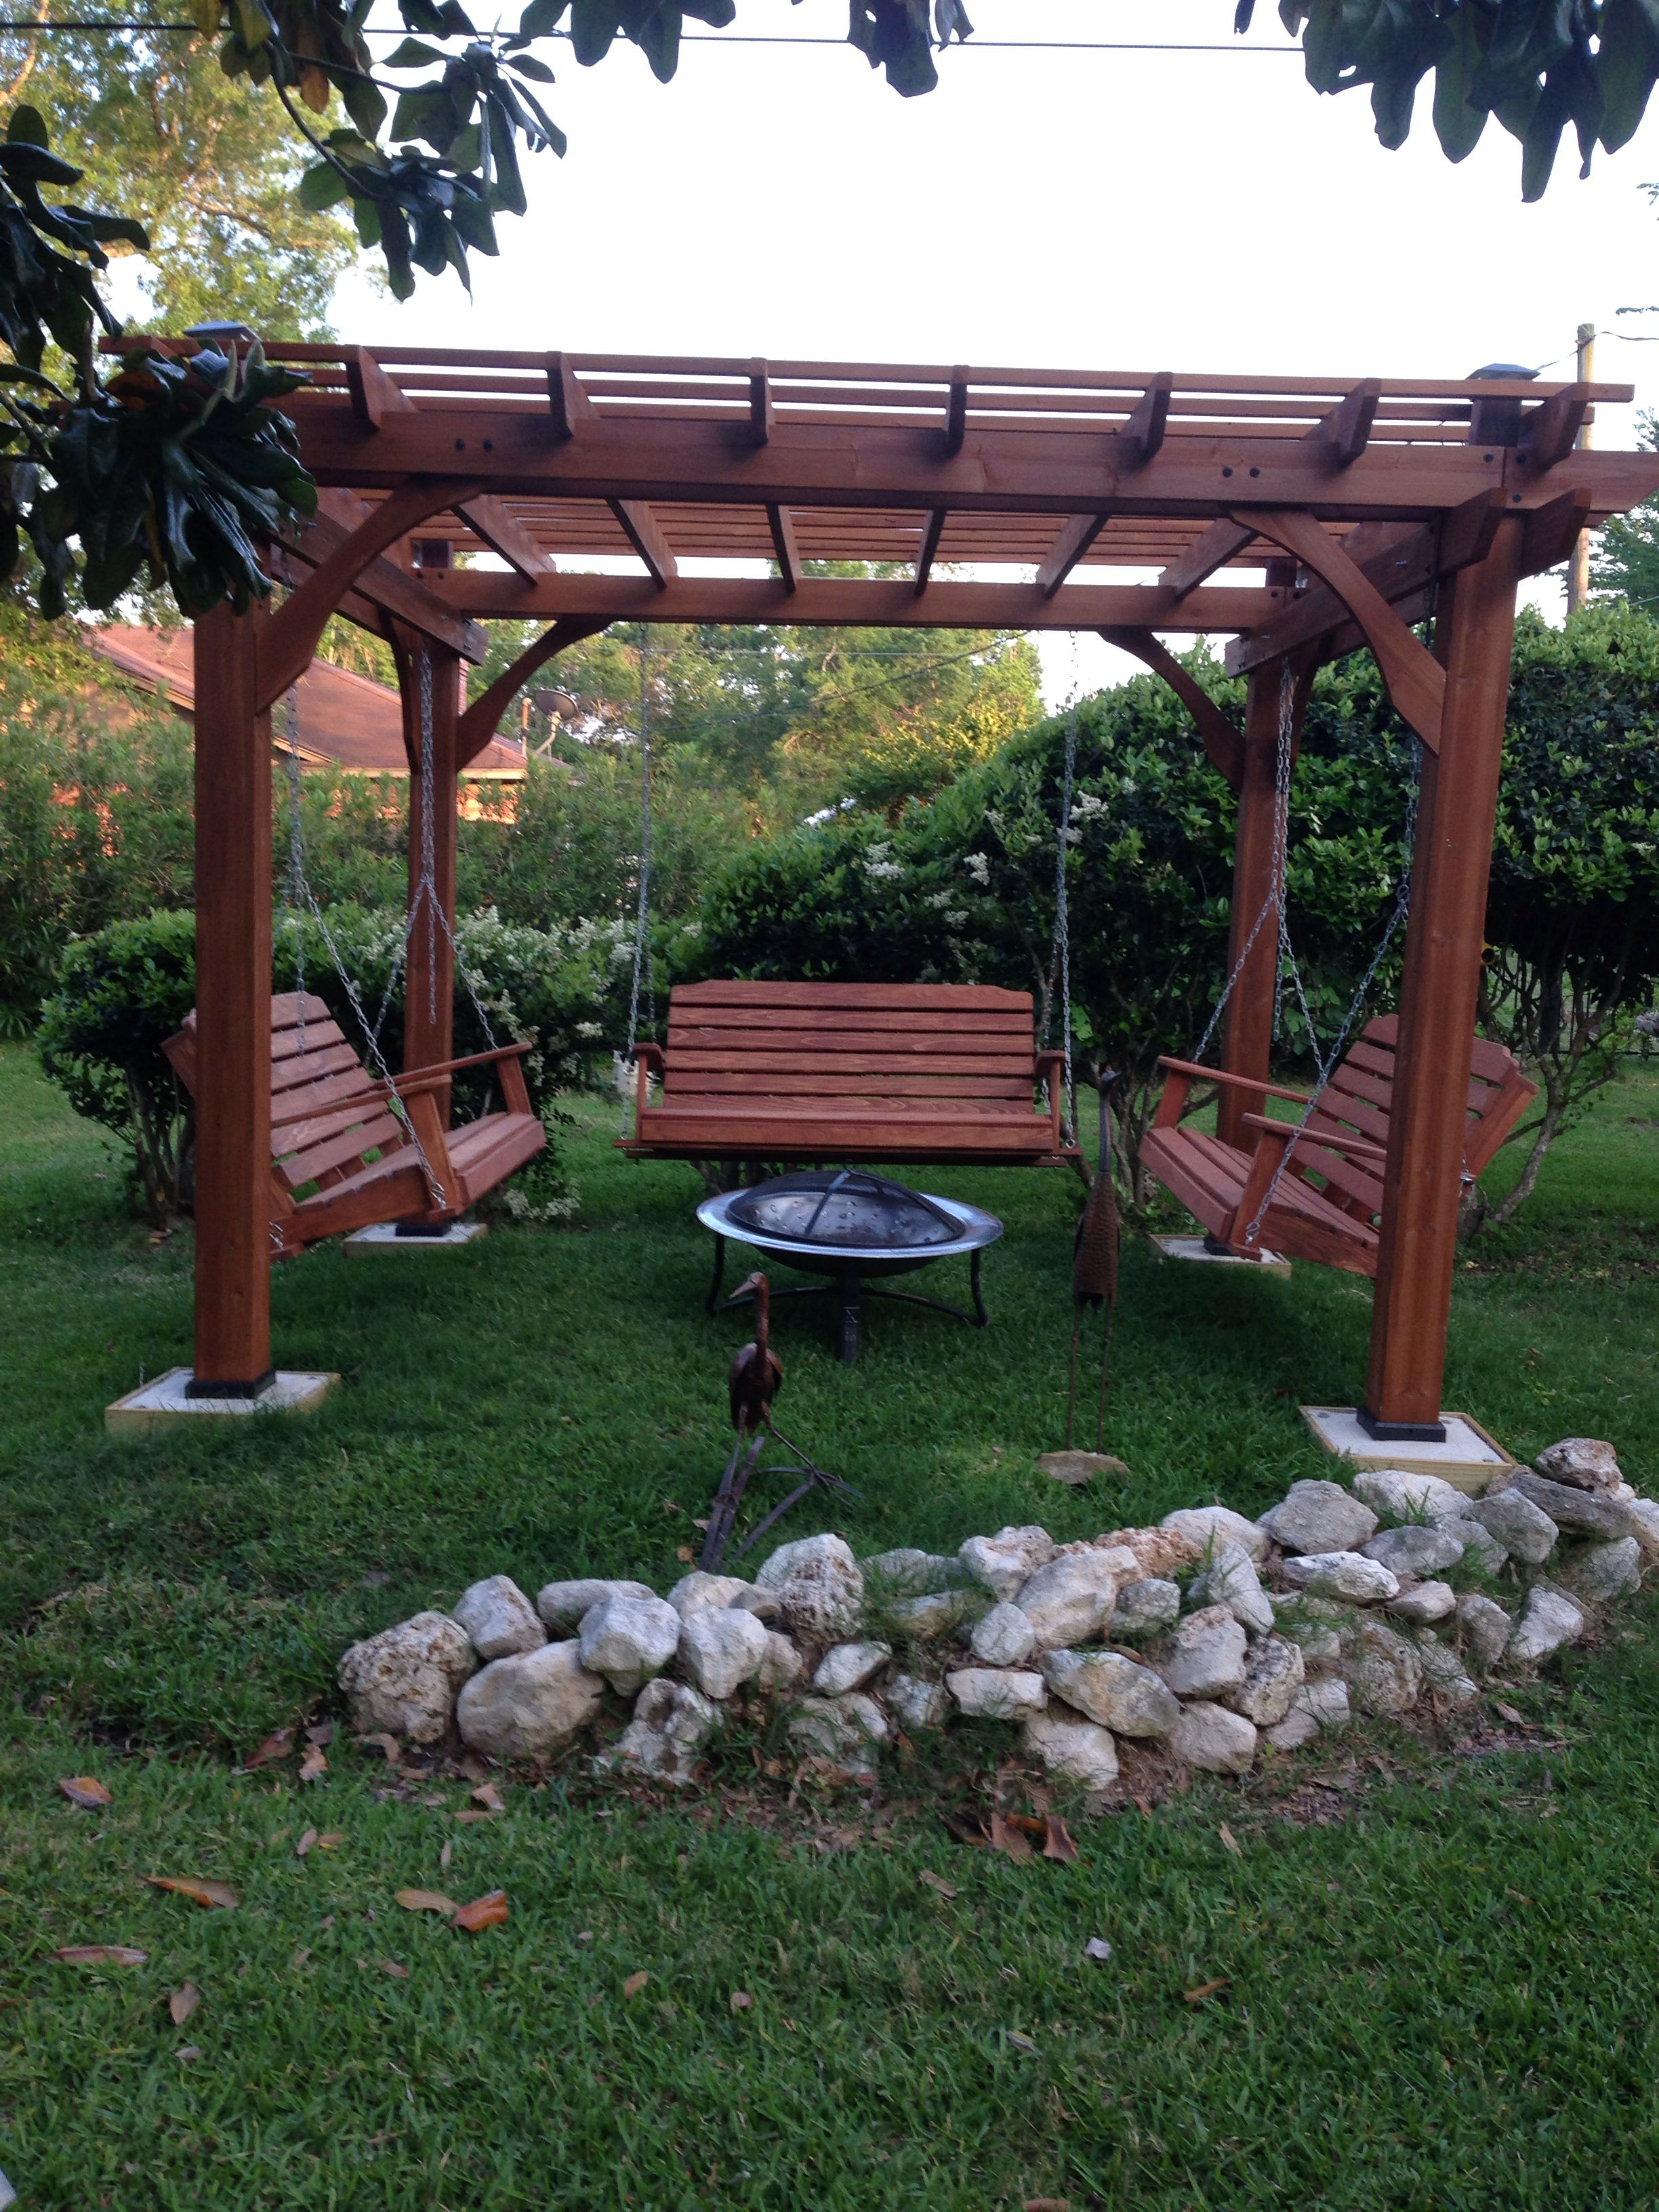 Great outdoor area with pergola swings and fire pit backyard